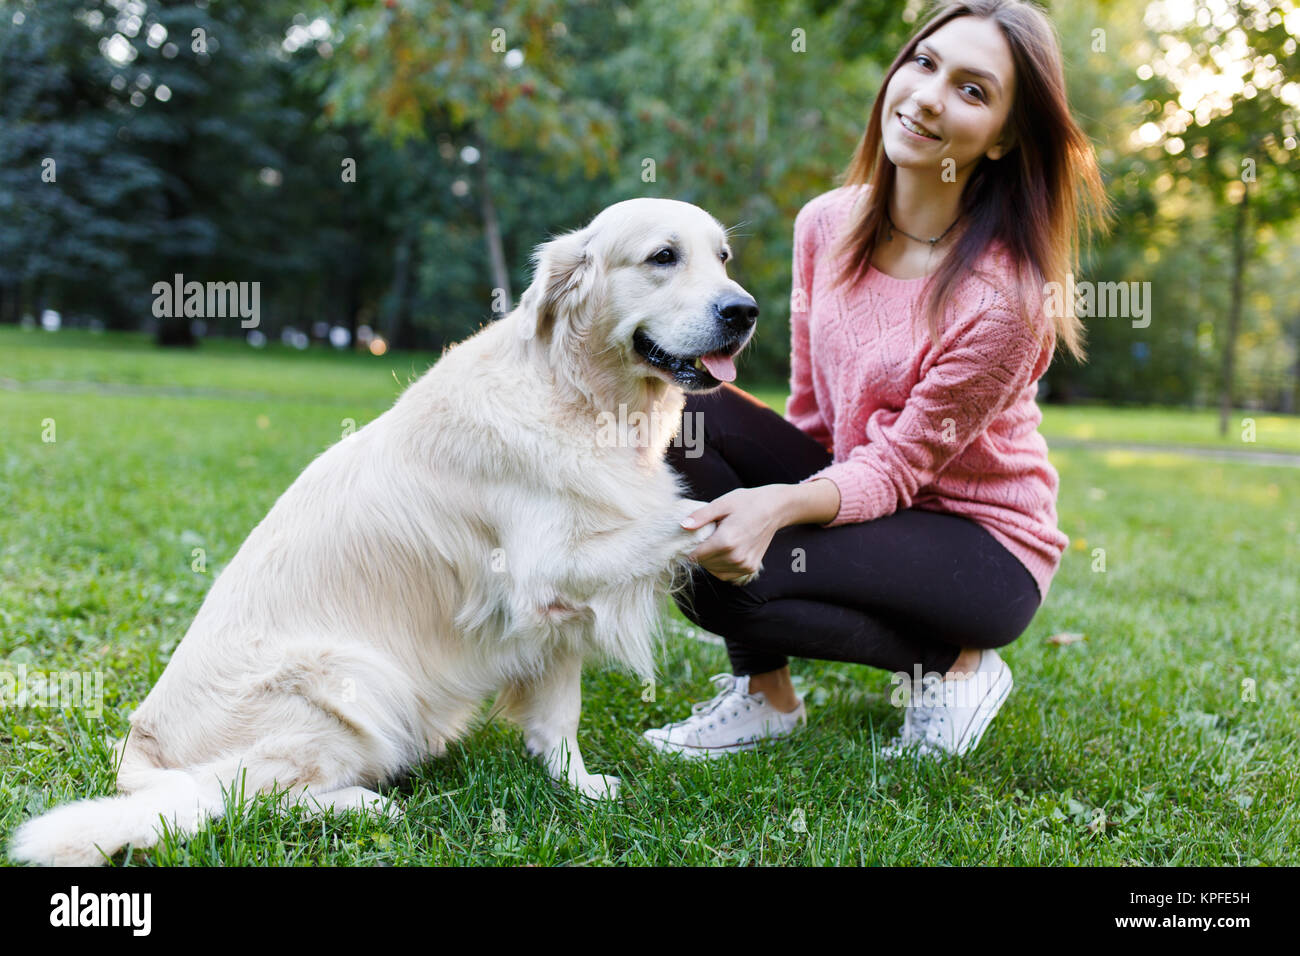 Image of woman with dog giving paw on lawn in summer park - Stock Image